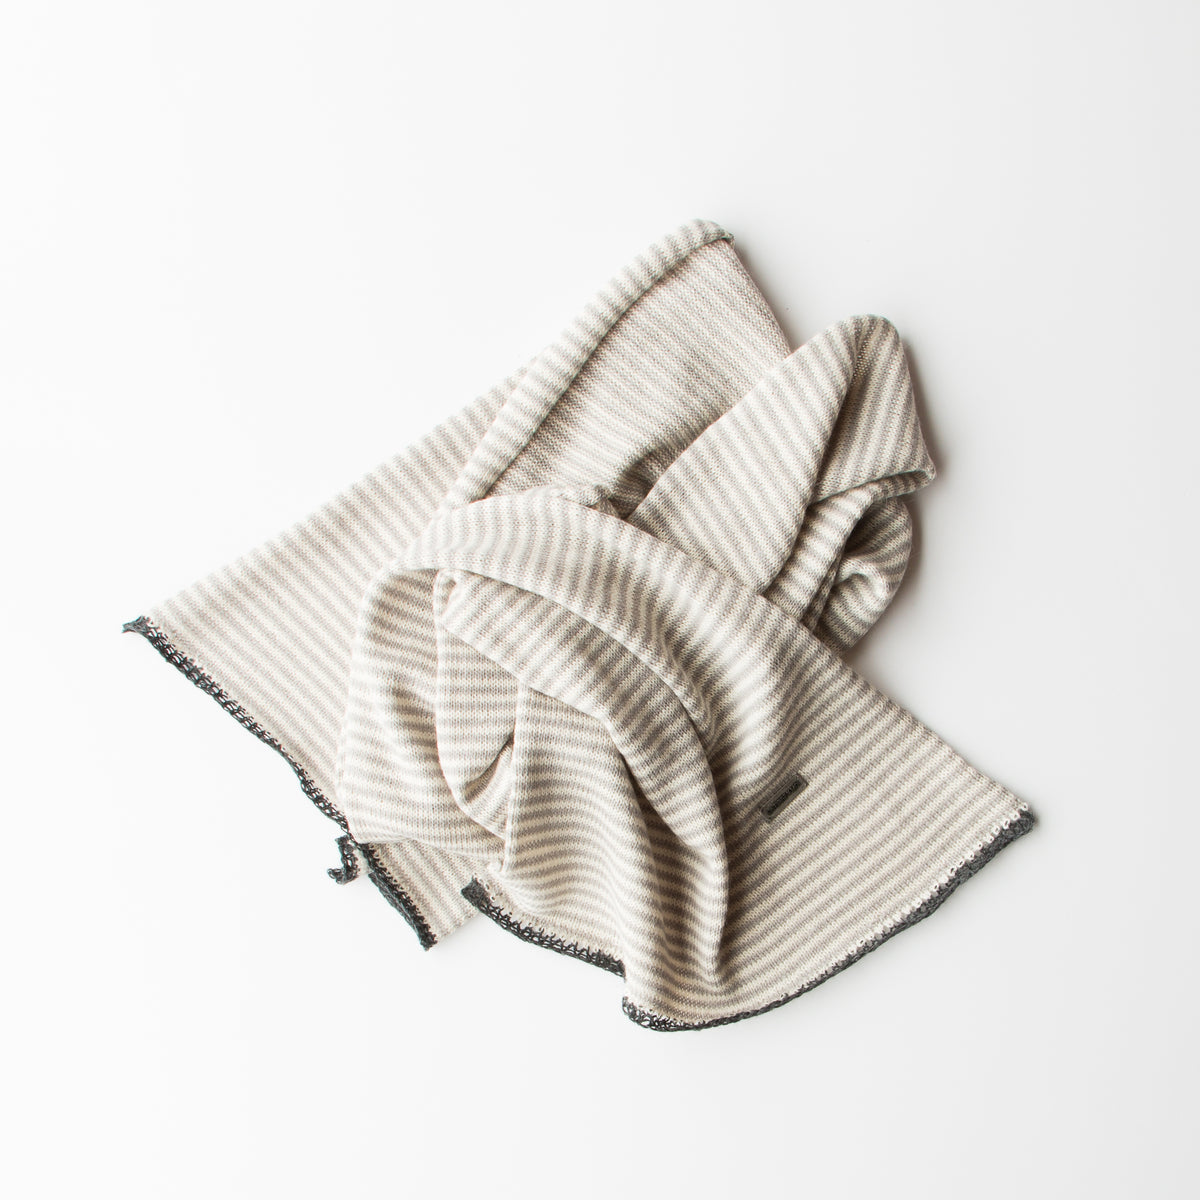 Light Grey, Cream & Charcoal - Baby Alpaca - Unisex Scarf With Fine Stripes & Contrasting Hems - Sold by Chic & Basta